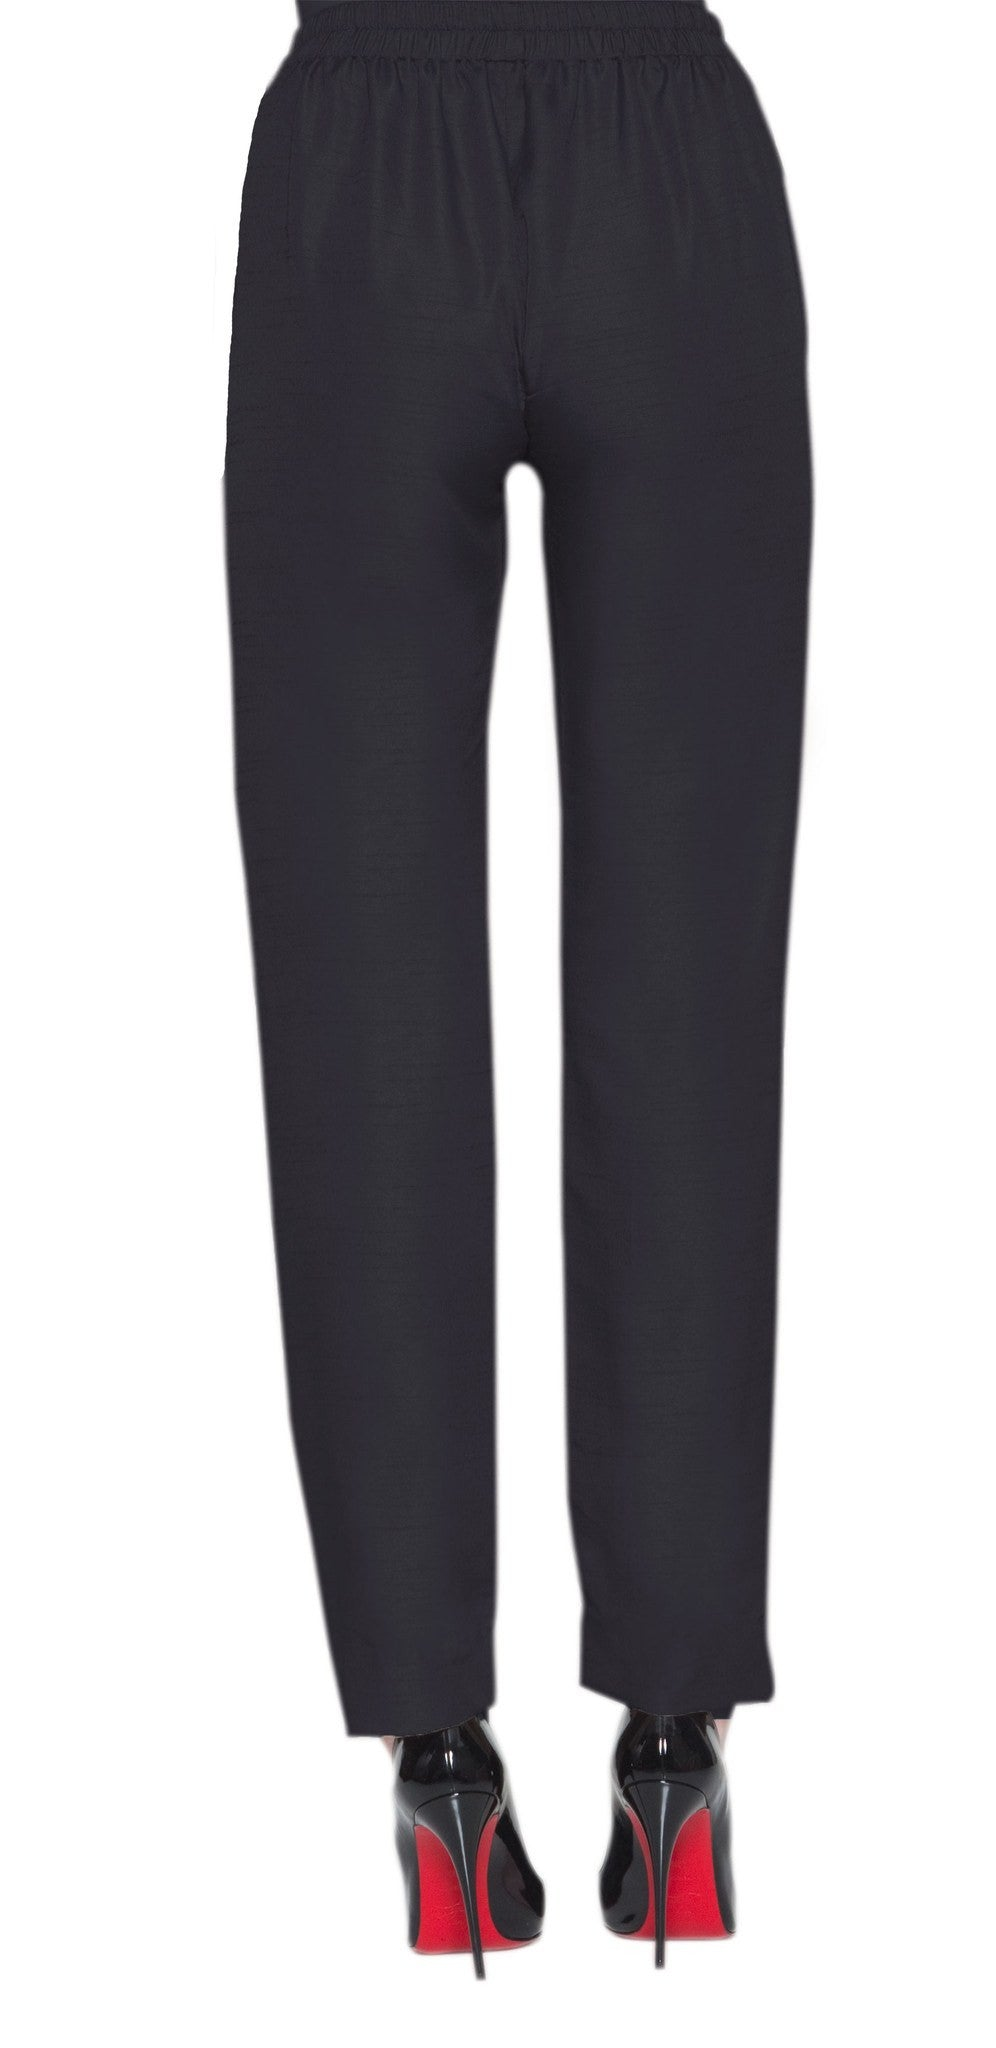 Zohra Tailored Cigarette Pants - Black - ARTIZARA.COM